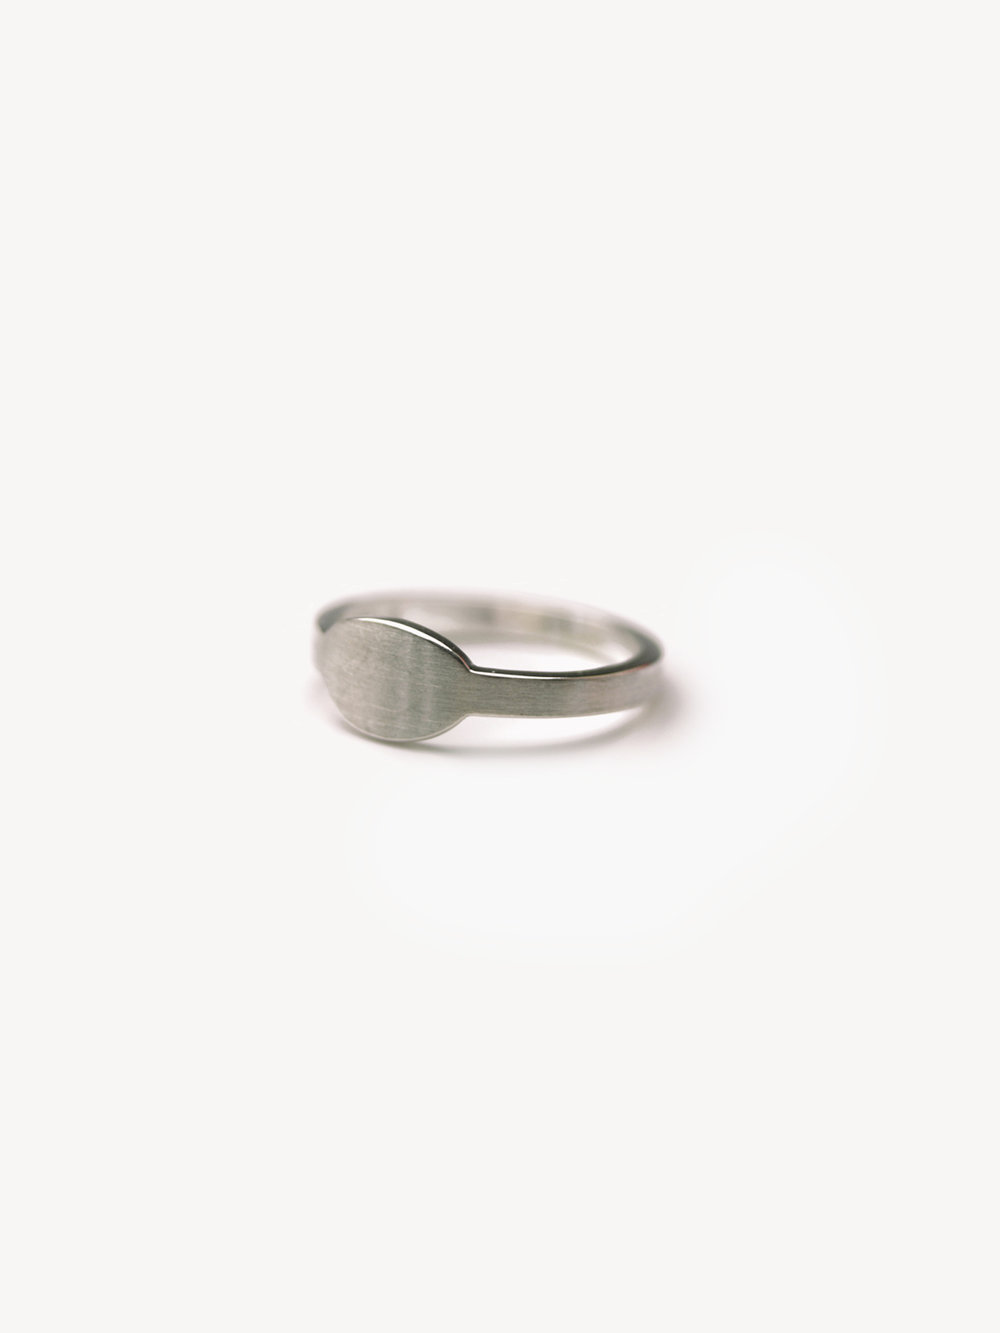 Siegelring, queroval klein in 925 Silber/ Signet ring, horizontal oval small in silver